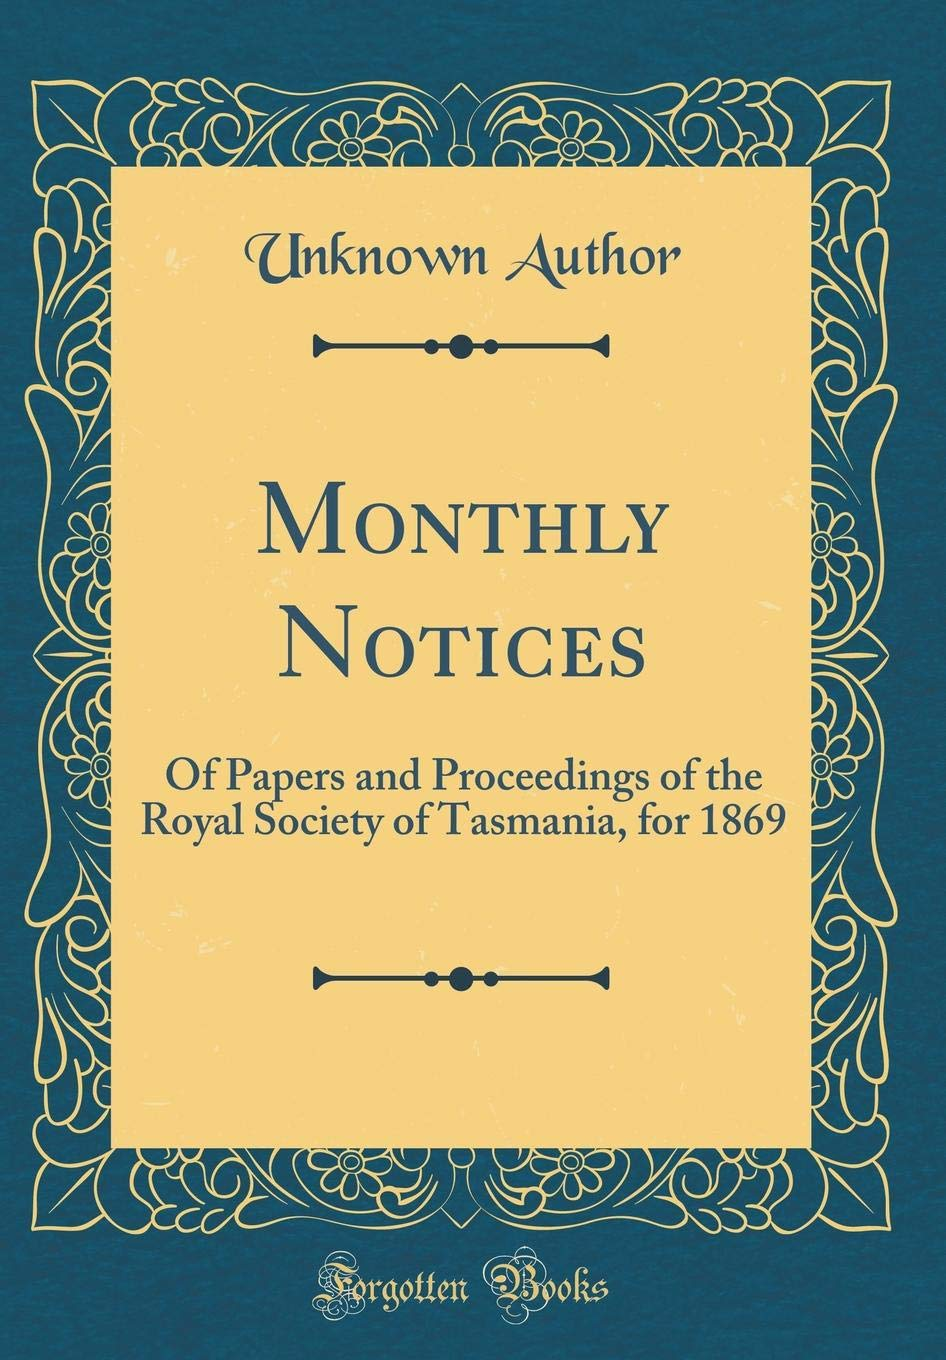 Monthly Notices: Of Papers and Proceedings of the Royal Society of Tasmania, for 1869 (Classic Reprint) ebook